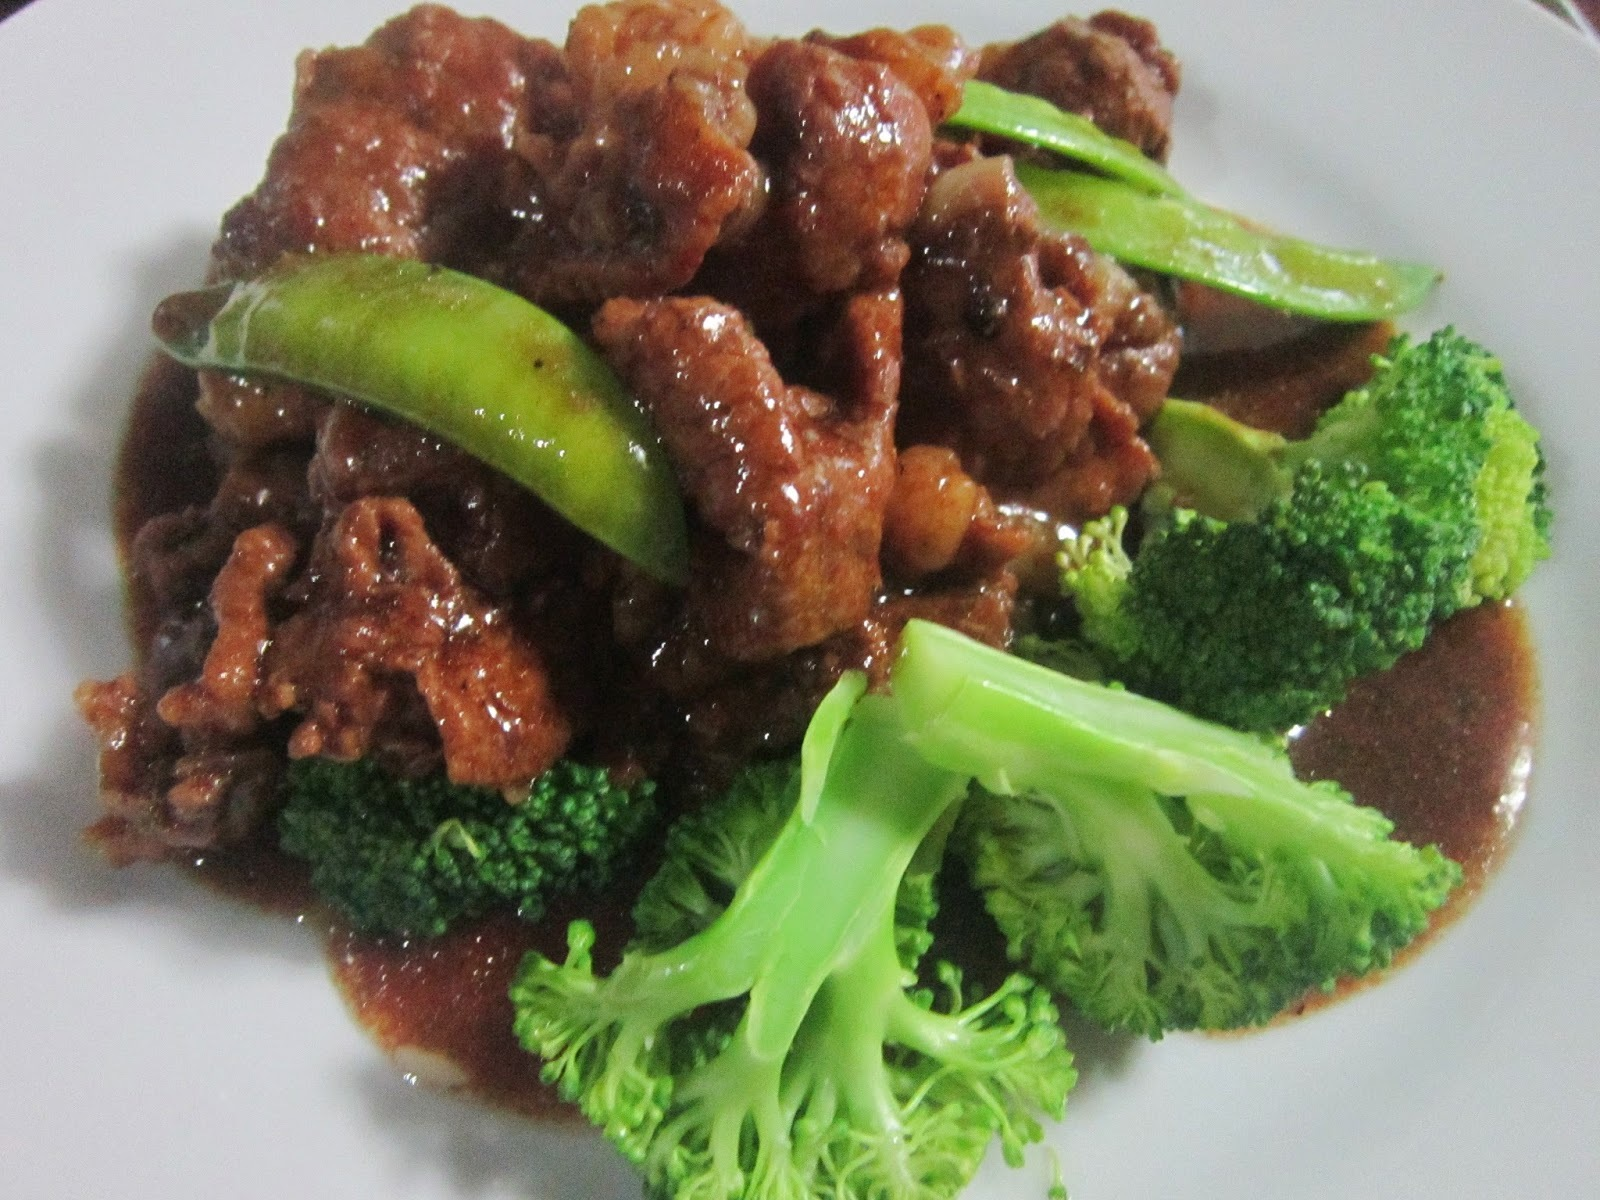 BEEF BROCOLLI and CHICHARO in OYSTER SAUCE